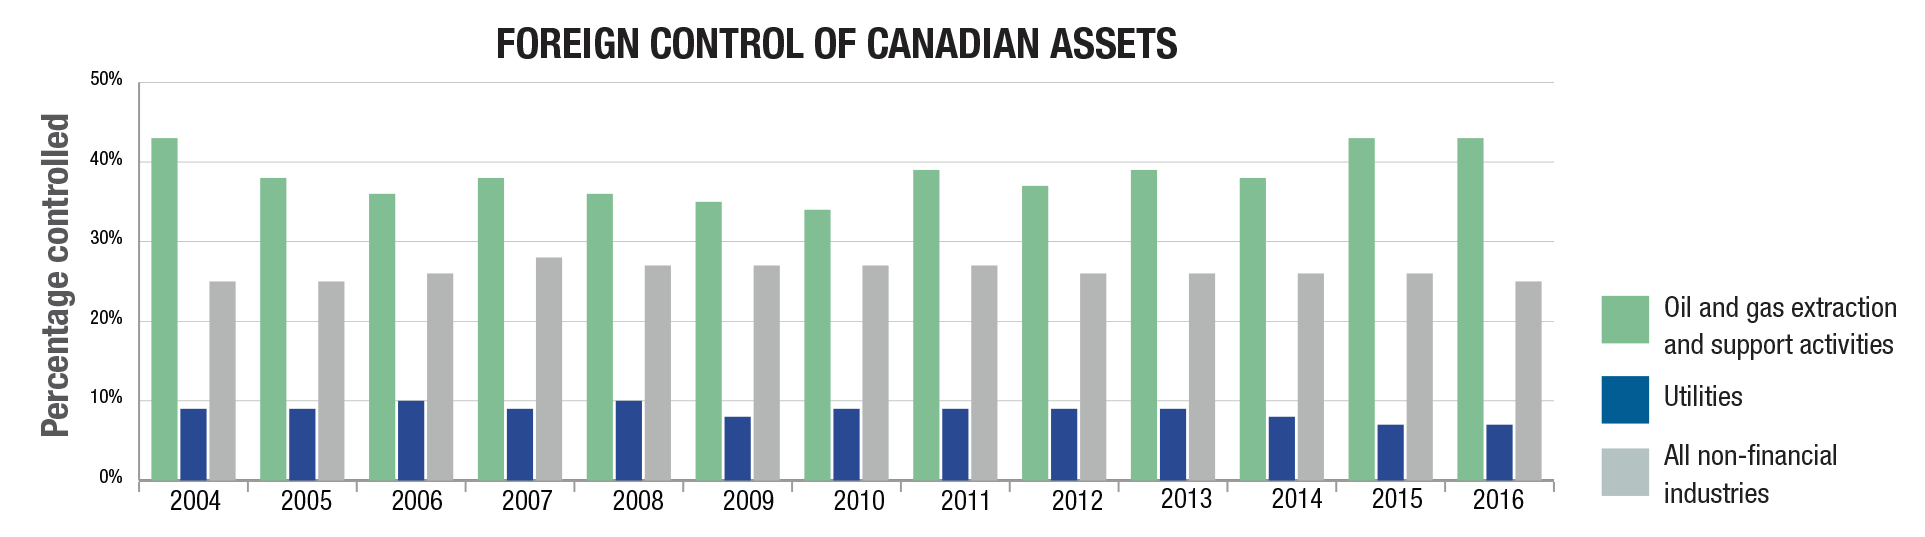 Foreign control of Canadian assets